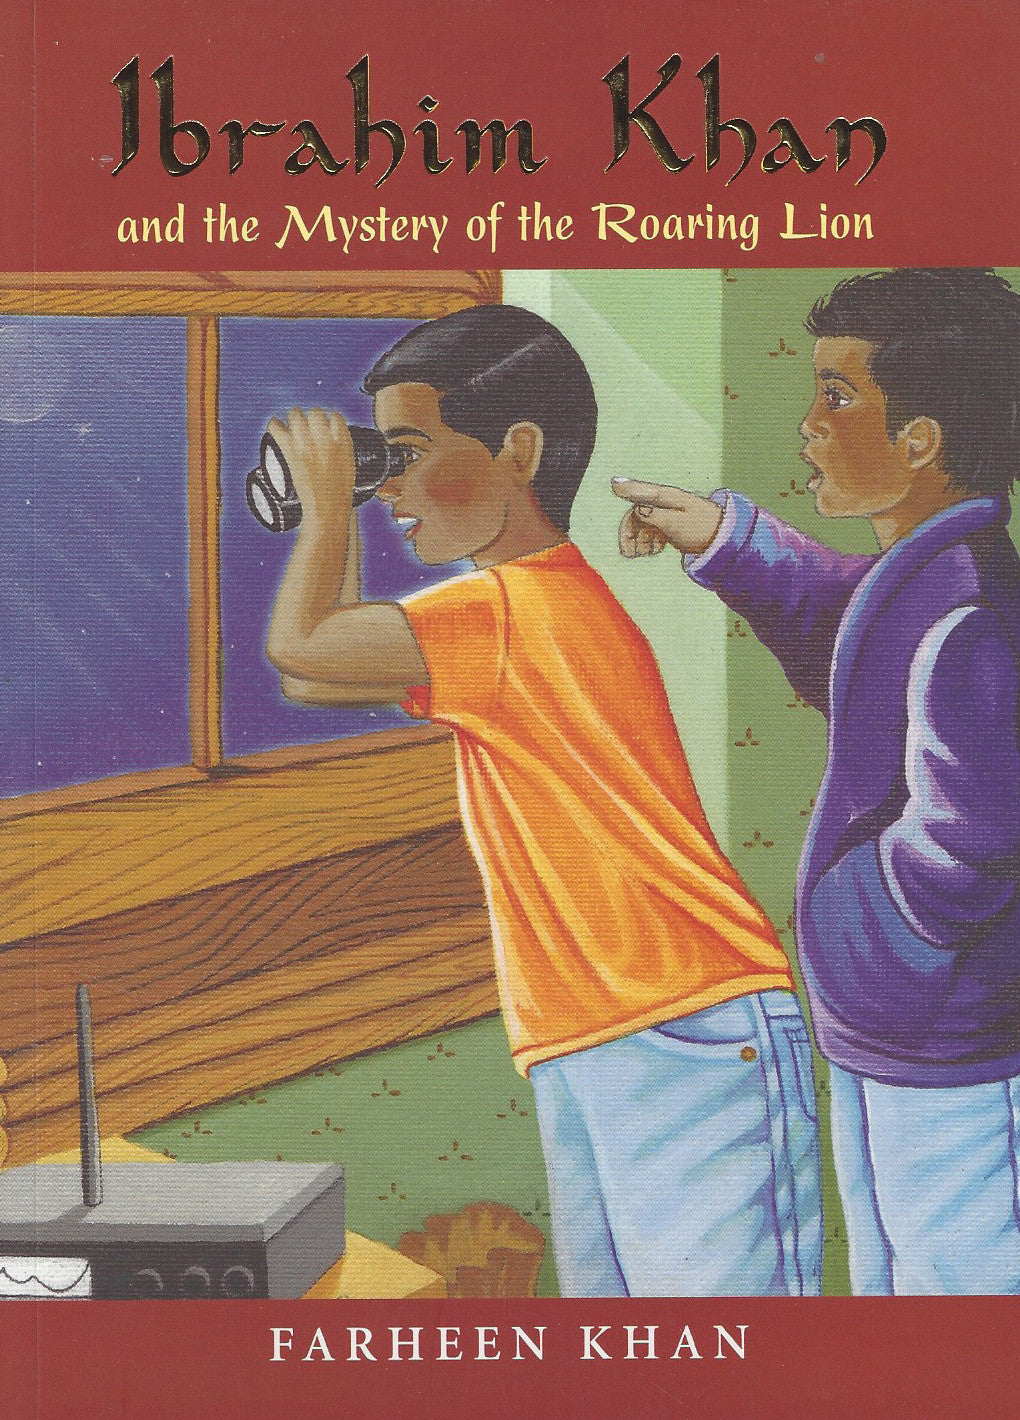 Ibrahim Khan and the Mystery of the Roaring Lion , Book - Daybreak International Bookstore, Daybreak Press Global Bookshop